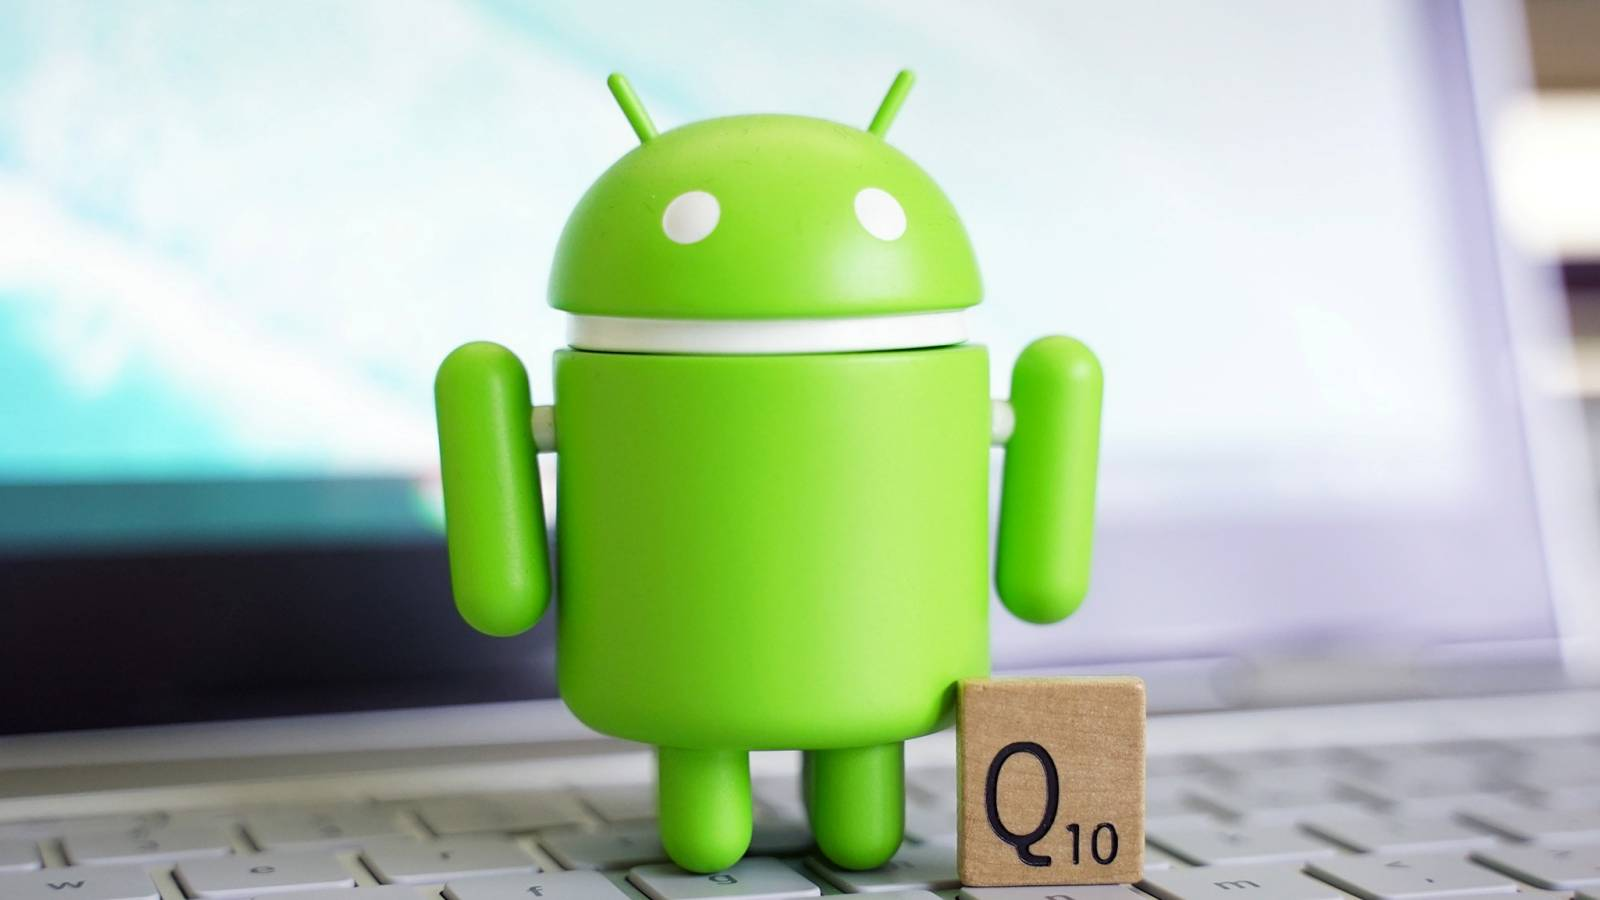 Android Q accident